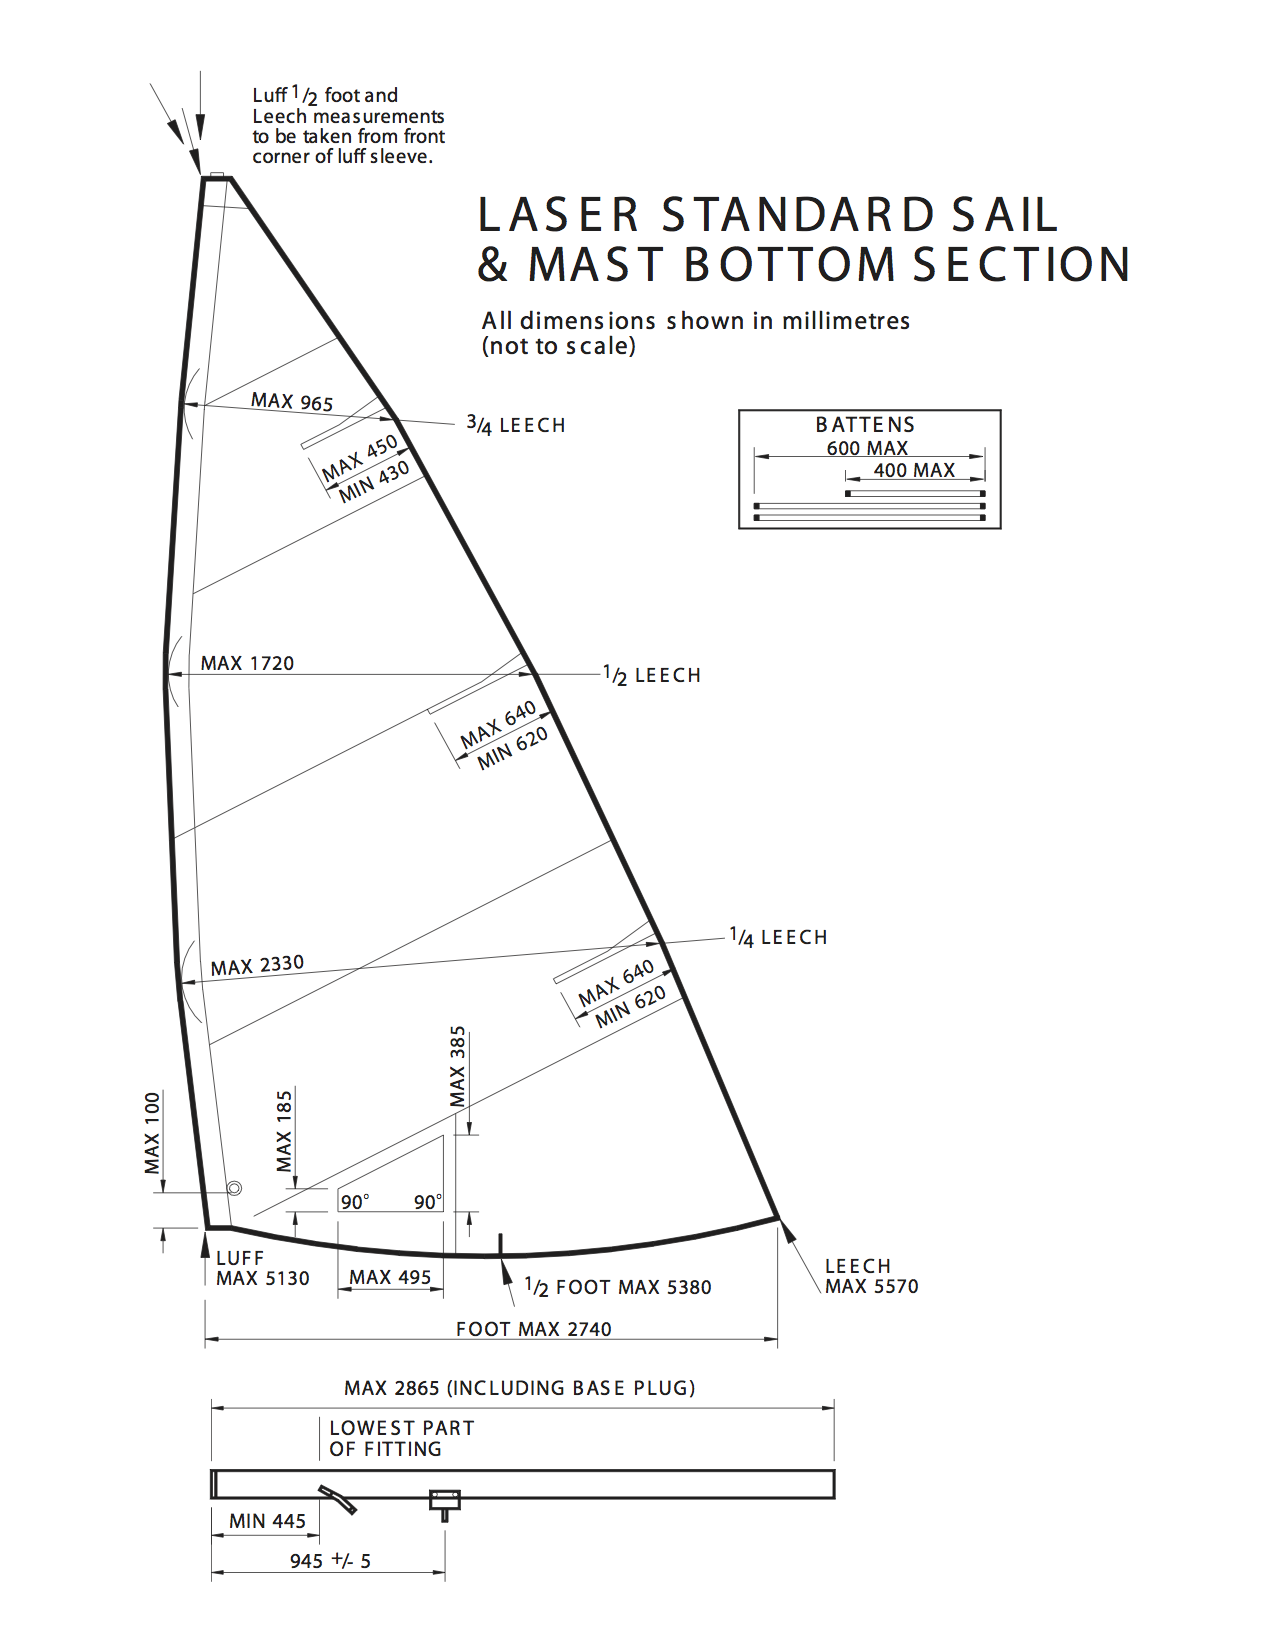 measurement-diagram-std-sail-mastlower